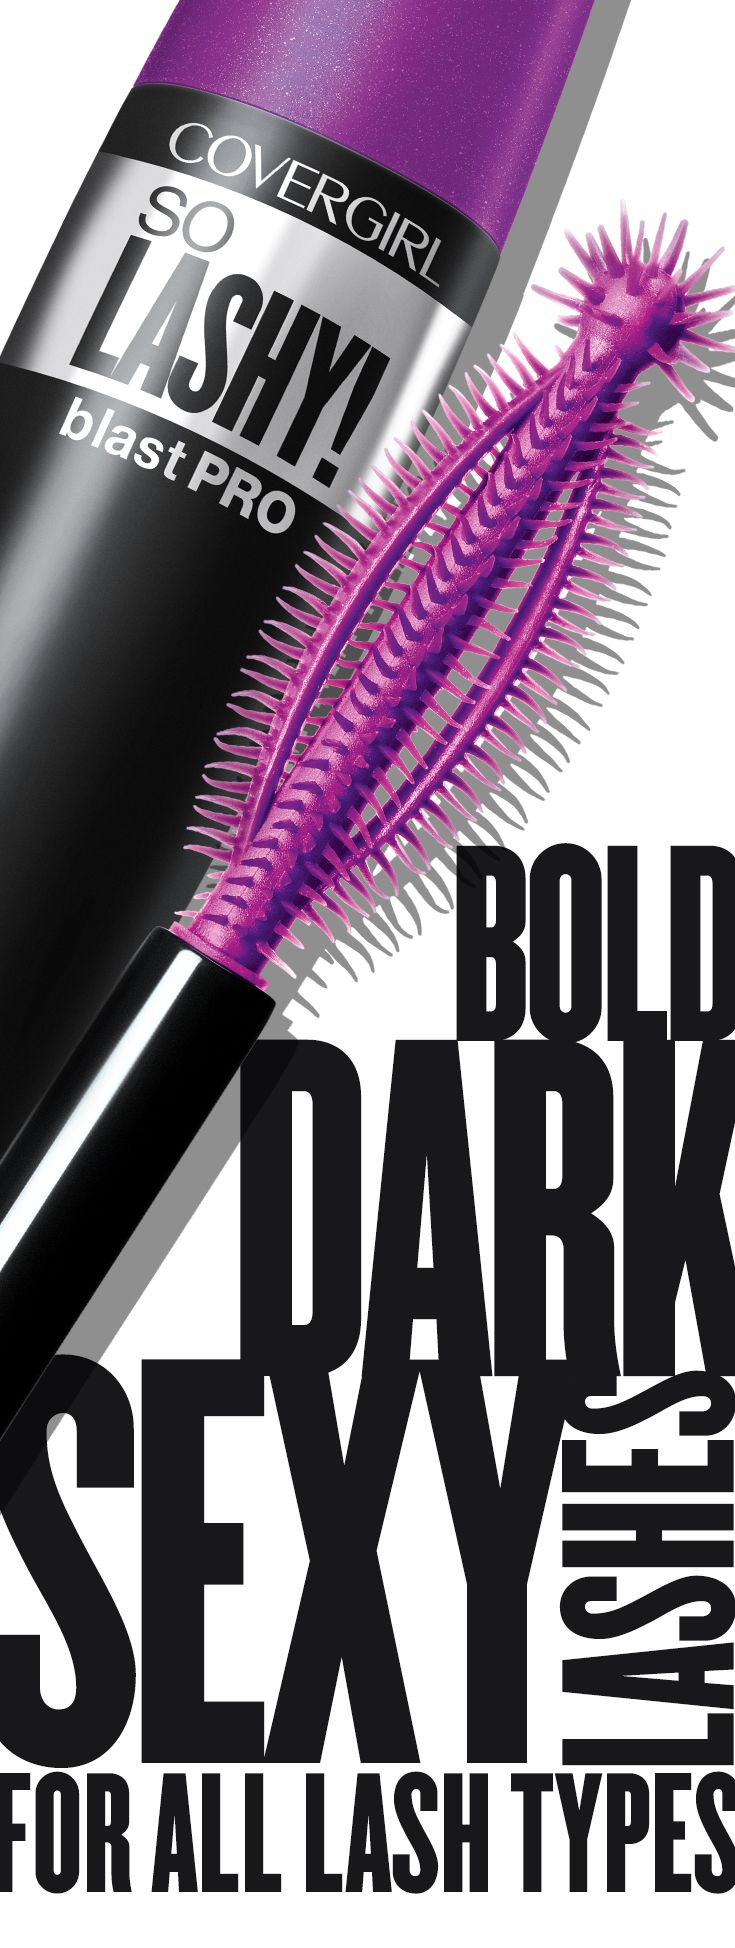 Looking for the perfect product to create bold, sexy lashes? Try COVERGIRL'S So Lashy! Mascara and get dark, dramatic lashes no matter your lash type. You'll love our Lash Finder Tip that finds and separates even the smallest lashes. Also available in waterproof. From easy, breezy, beautiful COVERGIRL.